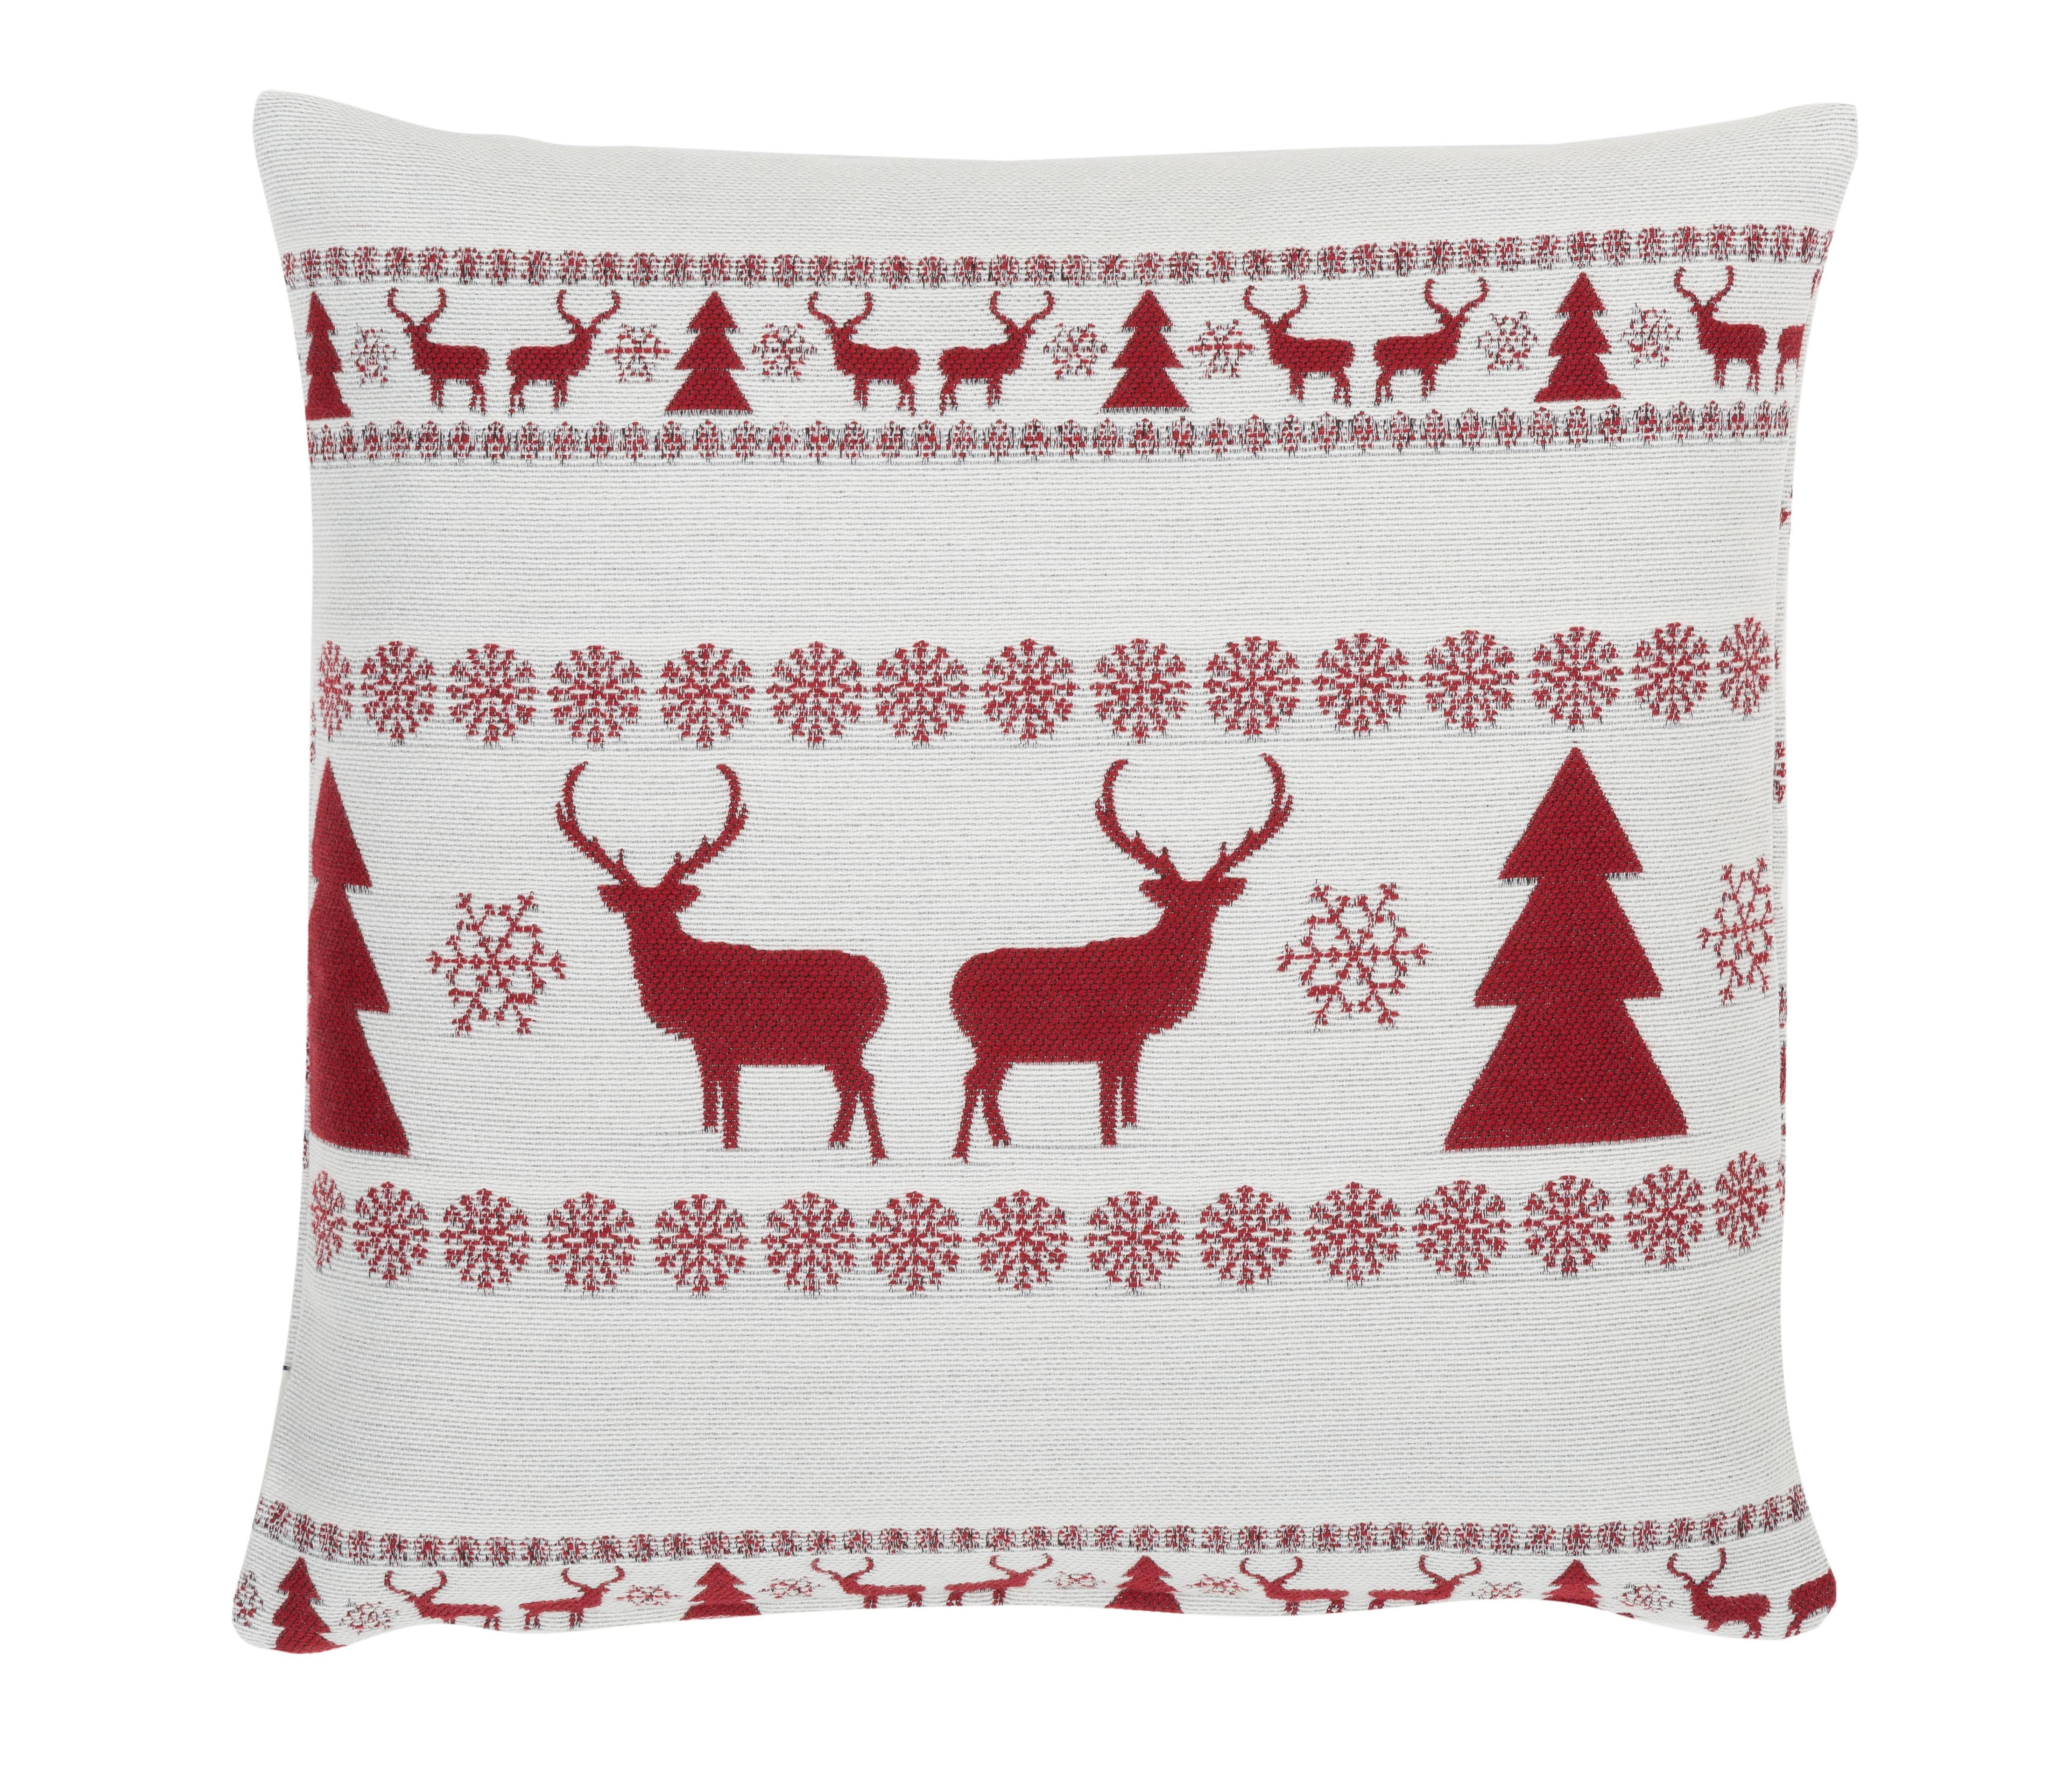 Kussenhoes Nordic Winter, 56% polyester, 31% acryl, 13% wol, Crèmewit, rood, 45 x 45 cm